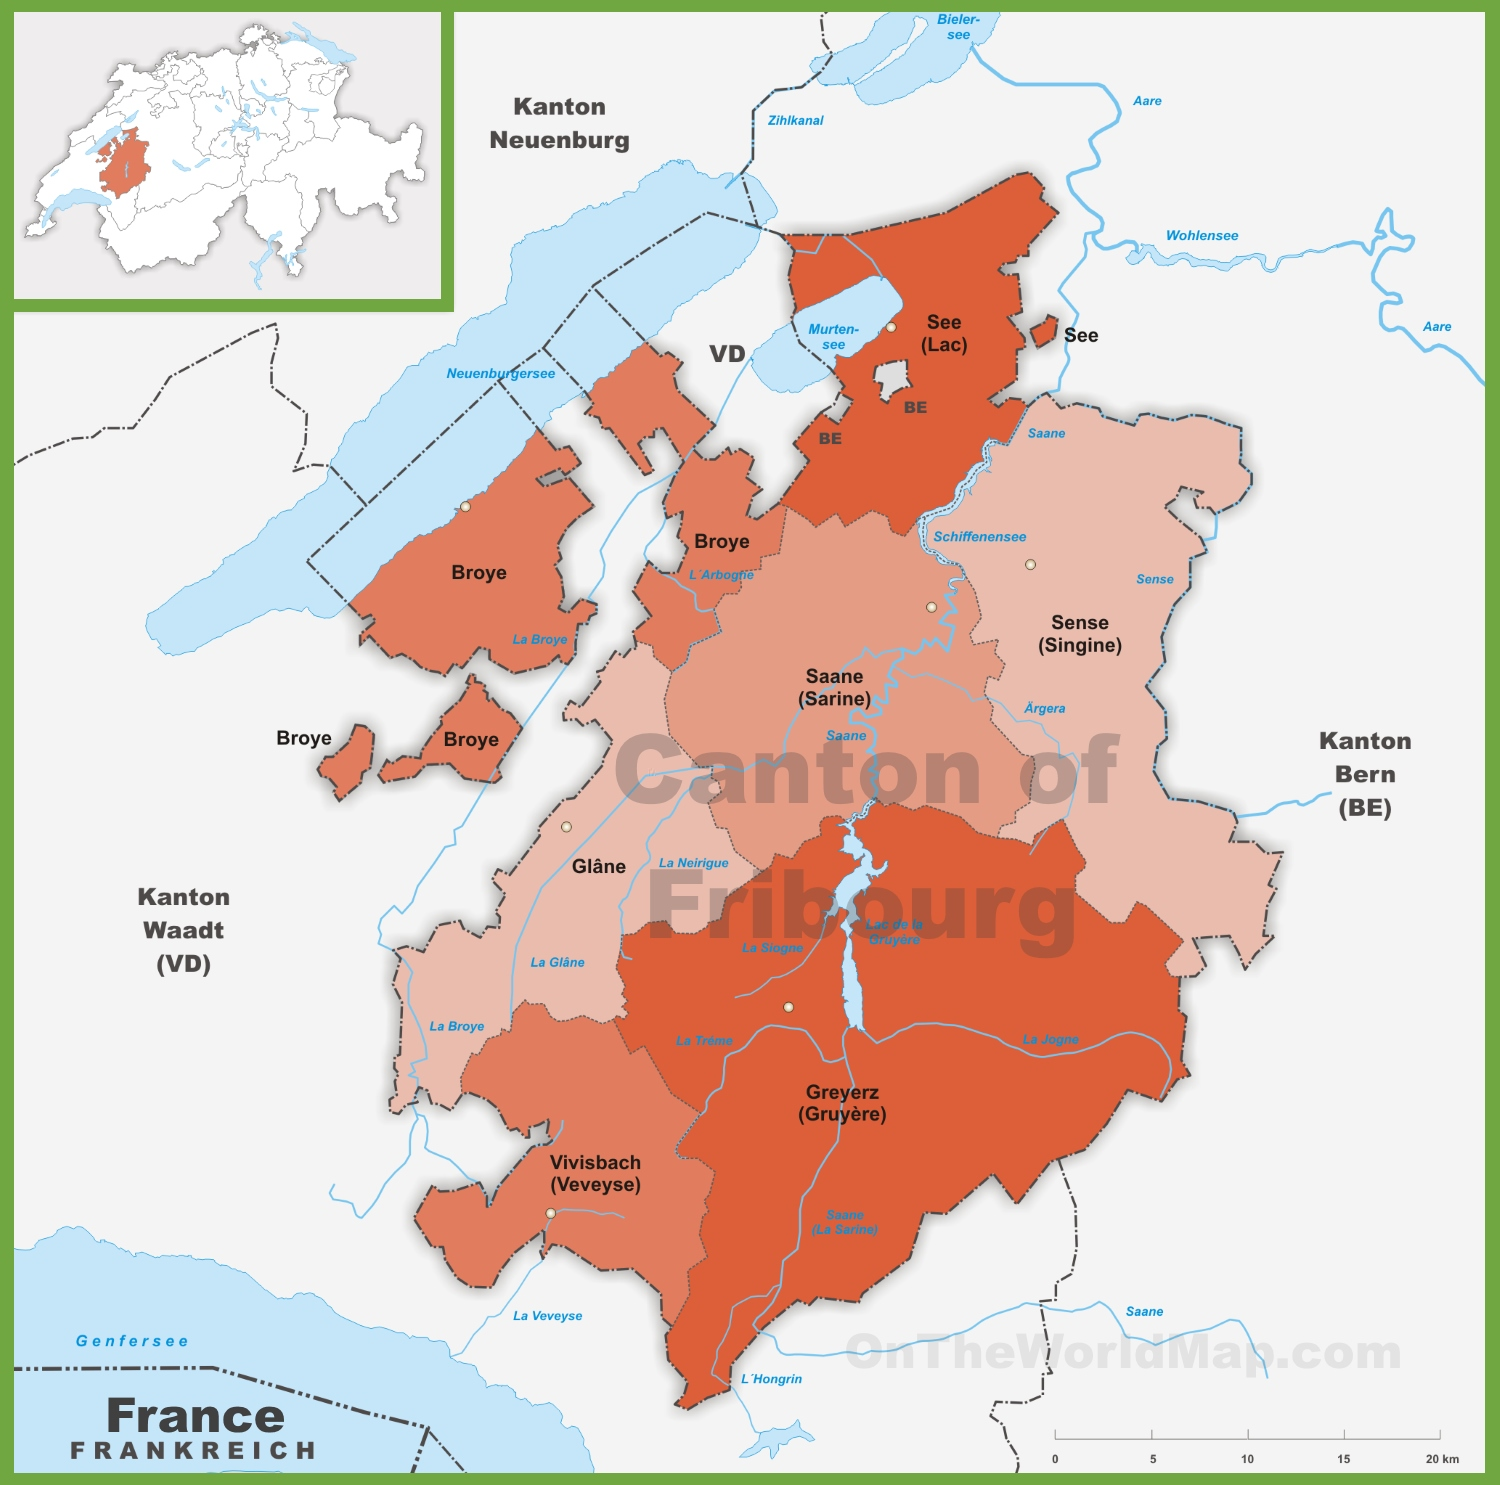 Canton of Fribourg Maps Switzerland Maps of Canton of Fribourg